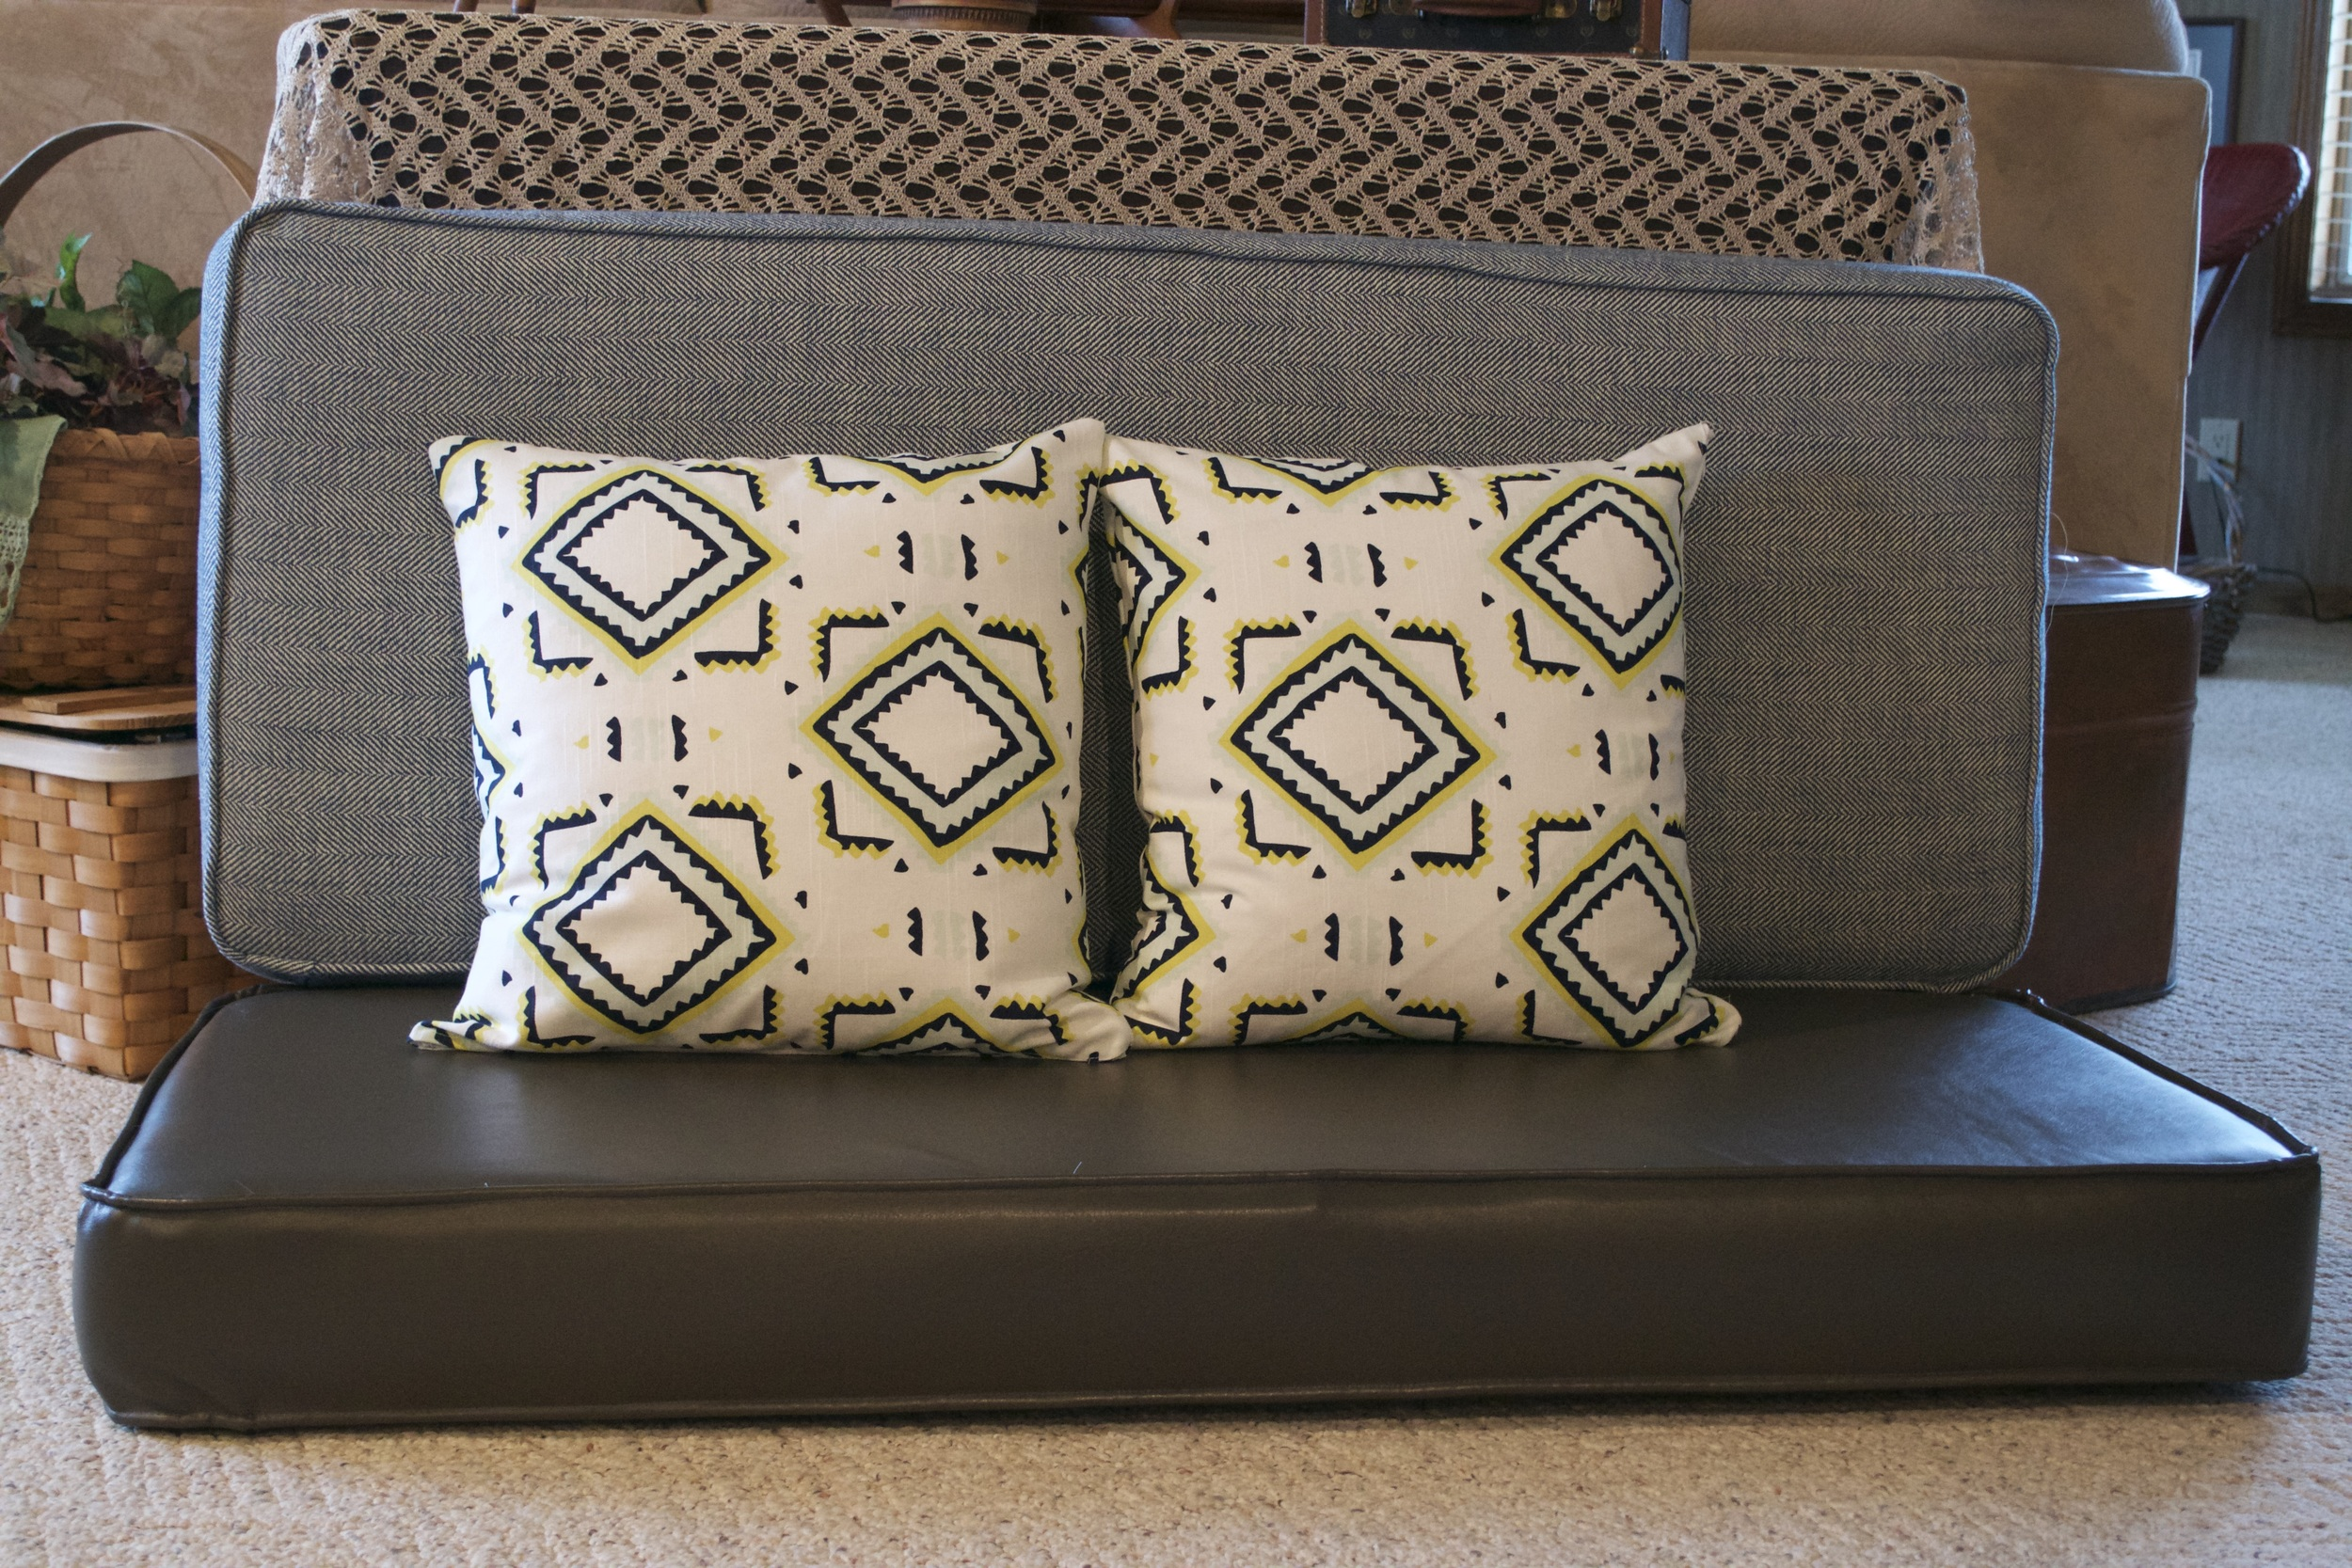 Pretty professional-grade stuff, right? The patterned pillows are the Nate Berkus fabric I was telling you about.